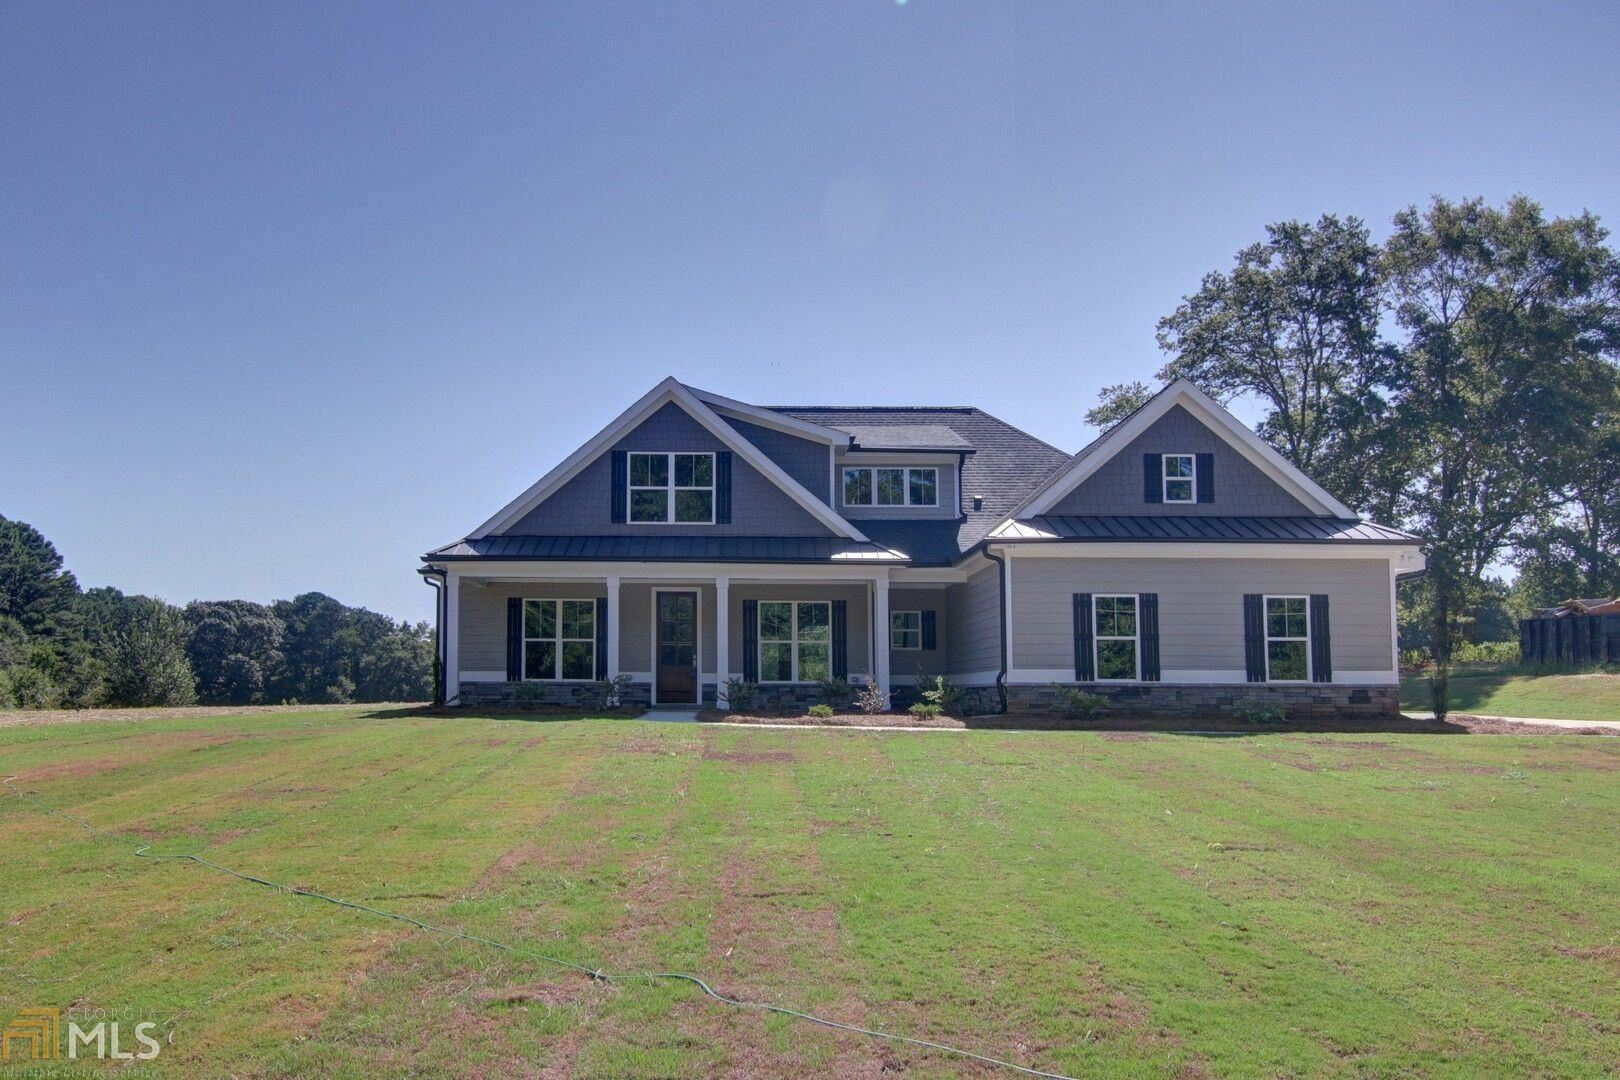 156 Lower Jersey Rd, Covington, GA 30014 - #: 8790061